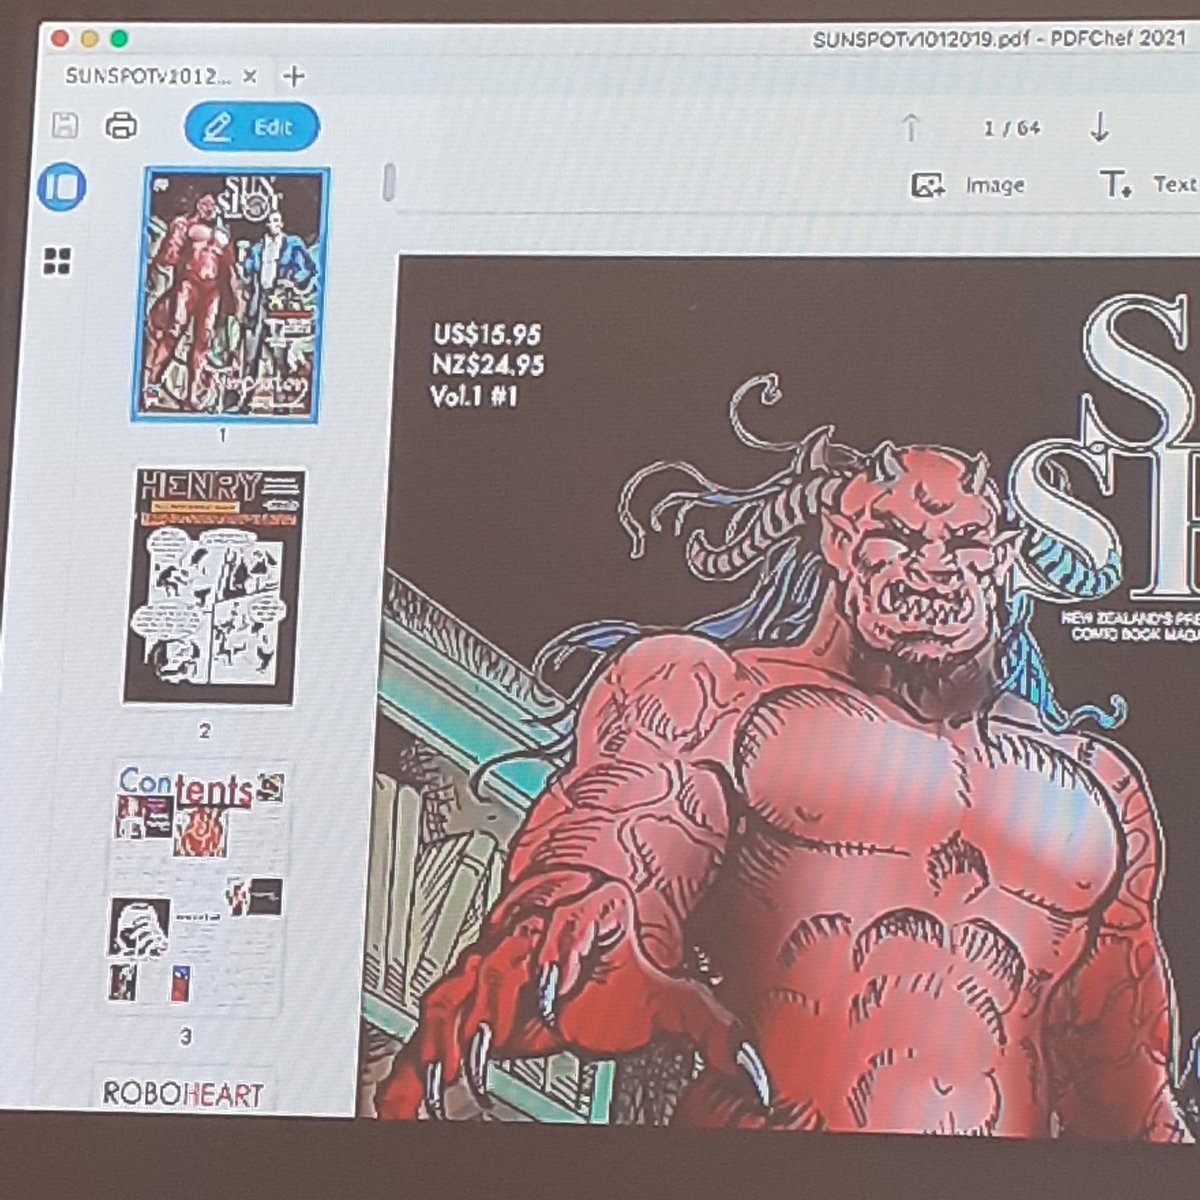 Working on this 64pgs digital magazine release promoting local #creatives from #NewZealand & @plungenz1 & @RisingSunComics for February 2021. Was supposed to be @kickstarter print release project in 2020 but pulled due to covid #SUNSPOTMAGAZINE  #comics #cosplay #popculture  #art